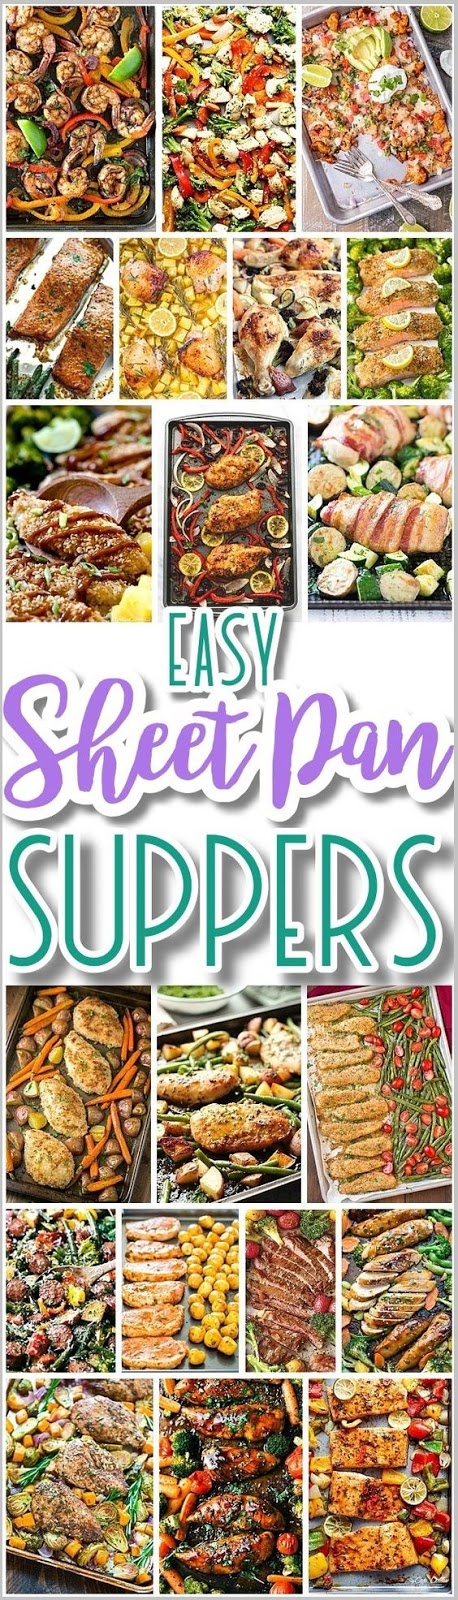 http://www.specialcuisinerecipe.com/2017/01/The-BEST-sheet-pan-suppers-recipes-easy-and-quick-family-lunch-and-simple-dinner-meal-ideas-using-only-ONE-baking-sheet-pan.html